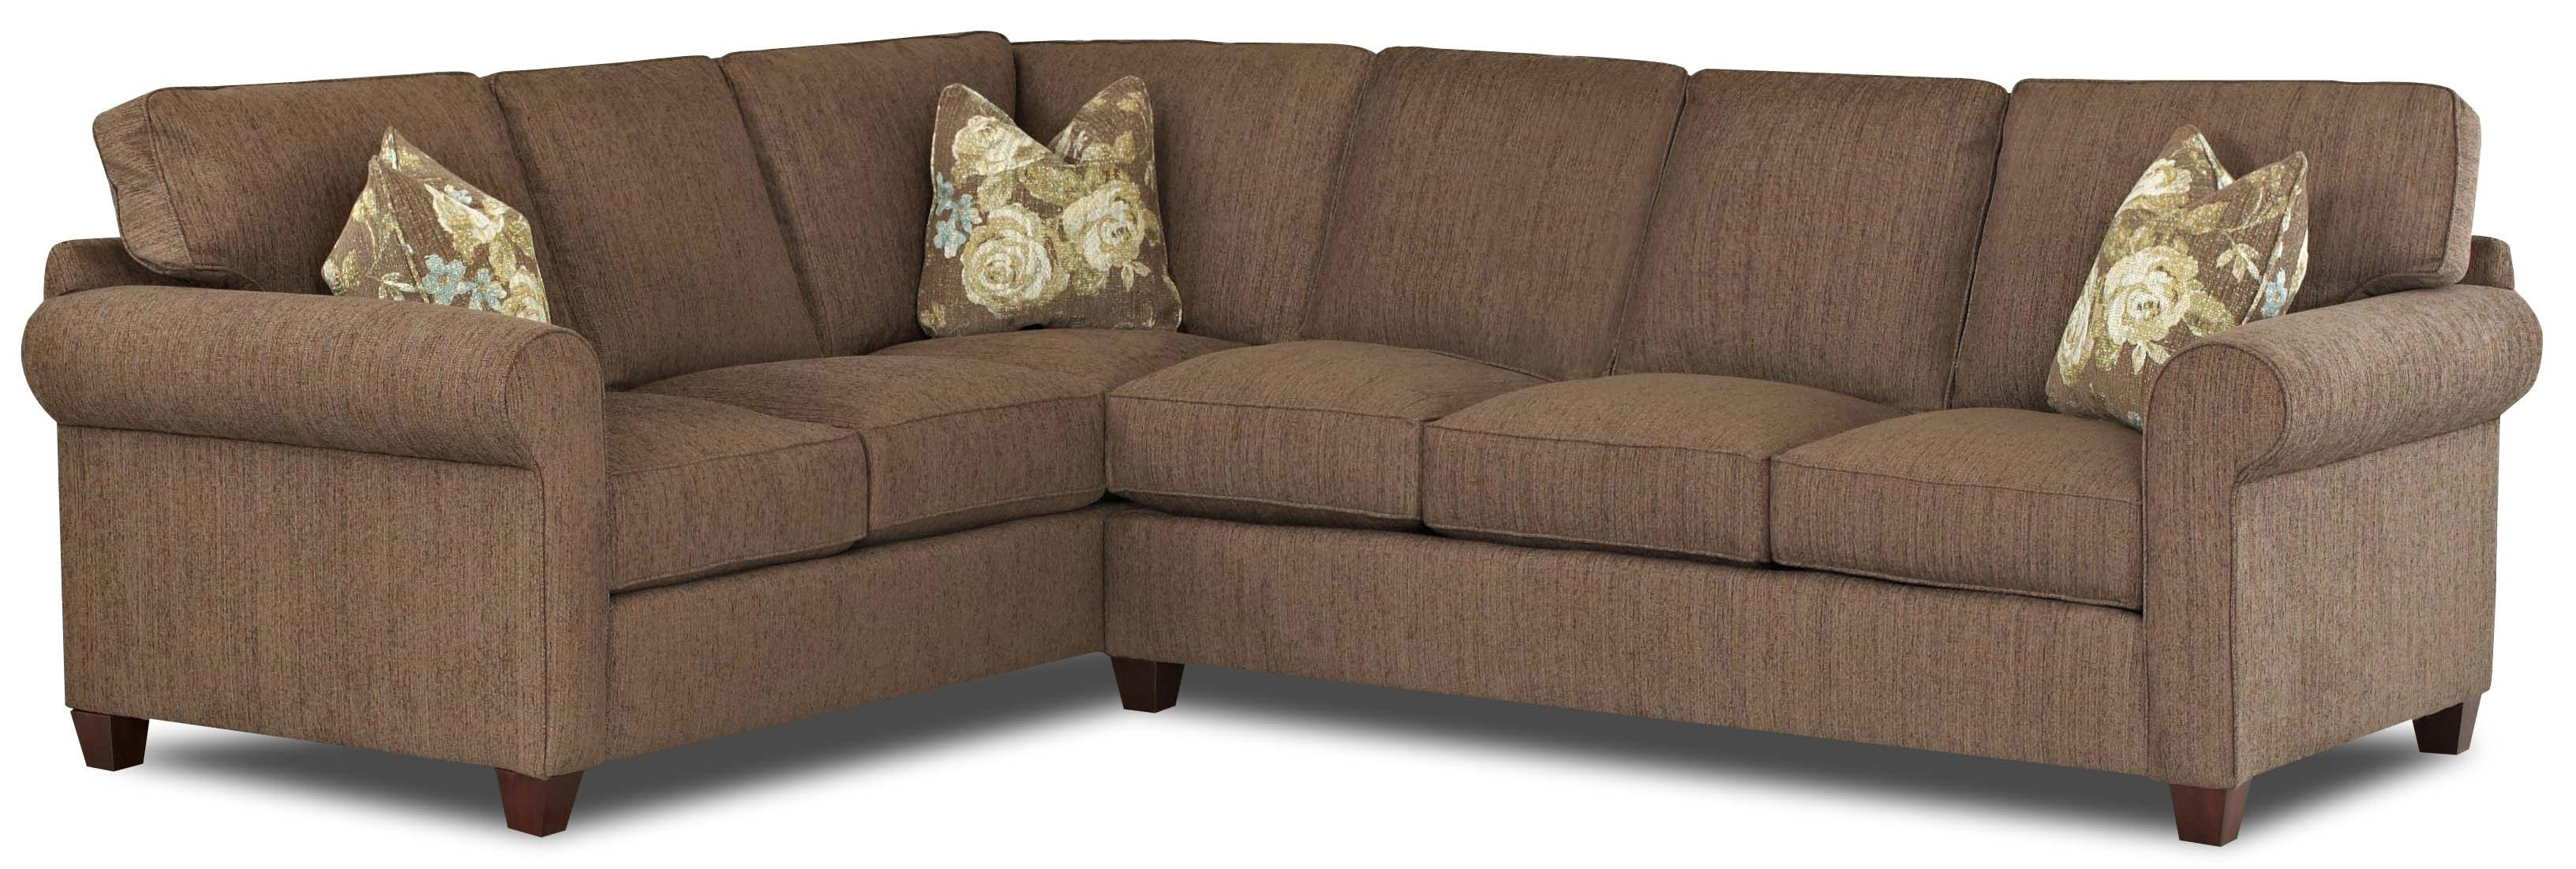 Wonderful Transitional 2 Piece Sectional Sofa With Welt